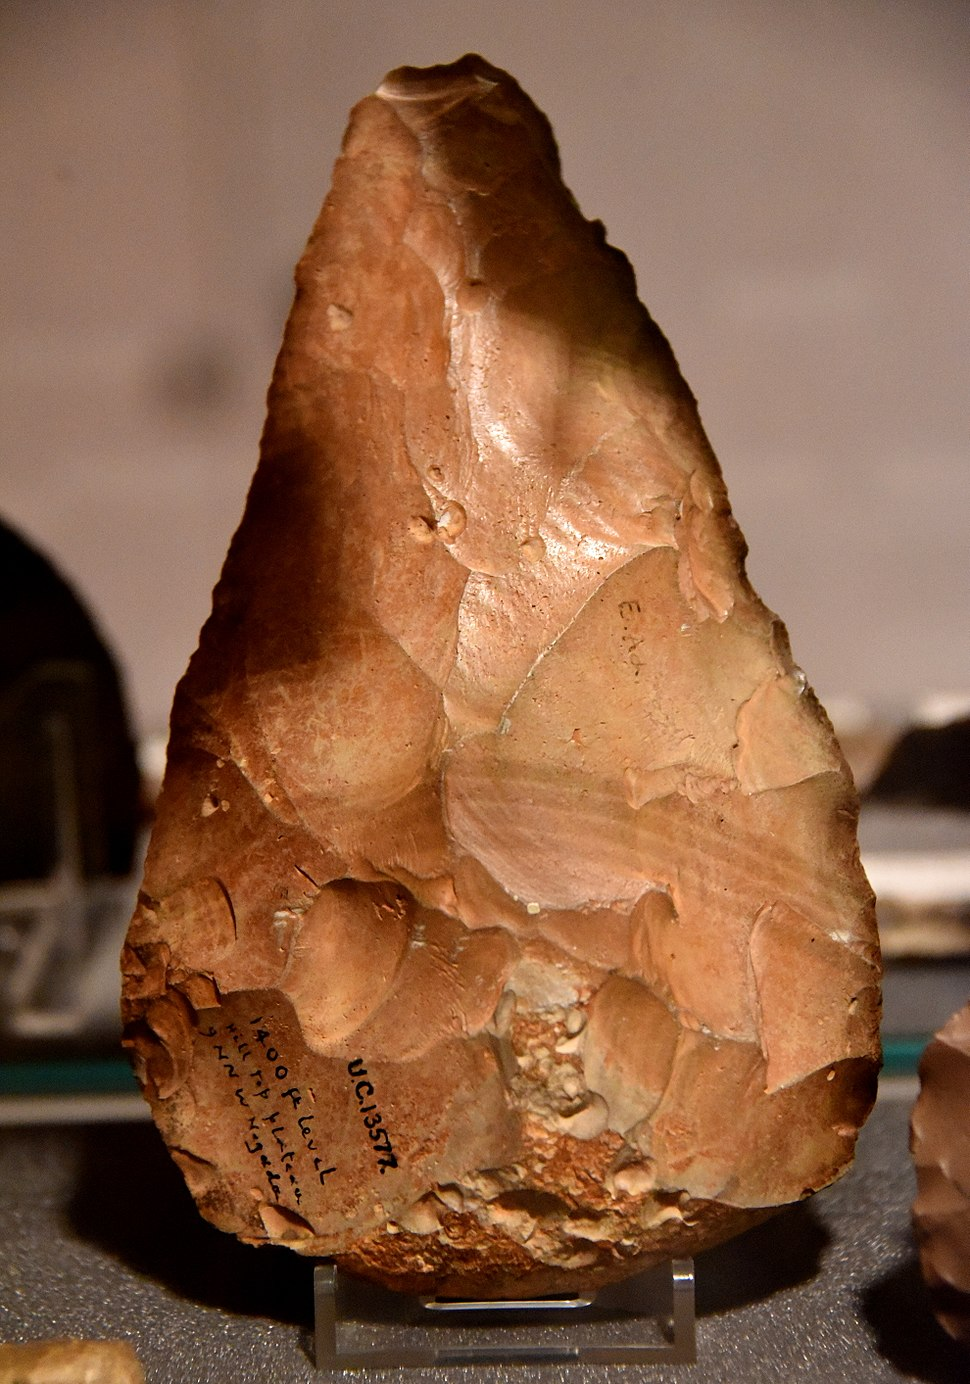 Acheulean hand-axe from Egypt. Found on a hill top plateau, 1400 feet above sea level, 9 miles NNW of the city of Naqada, Egypt. Paleolithic. The Petrie Museum of Egyptian Archaeology, London